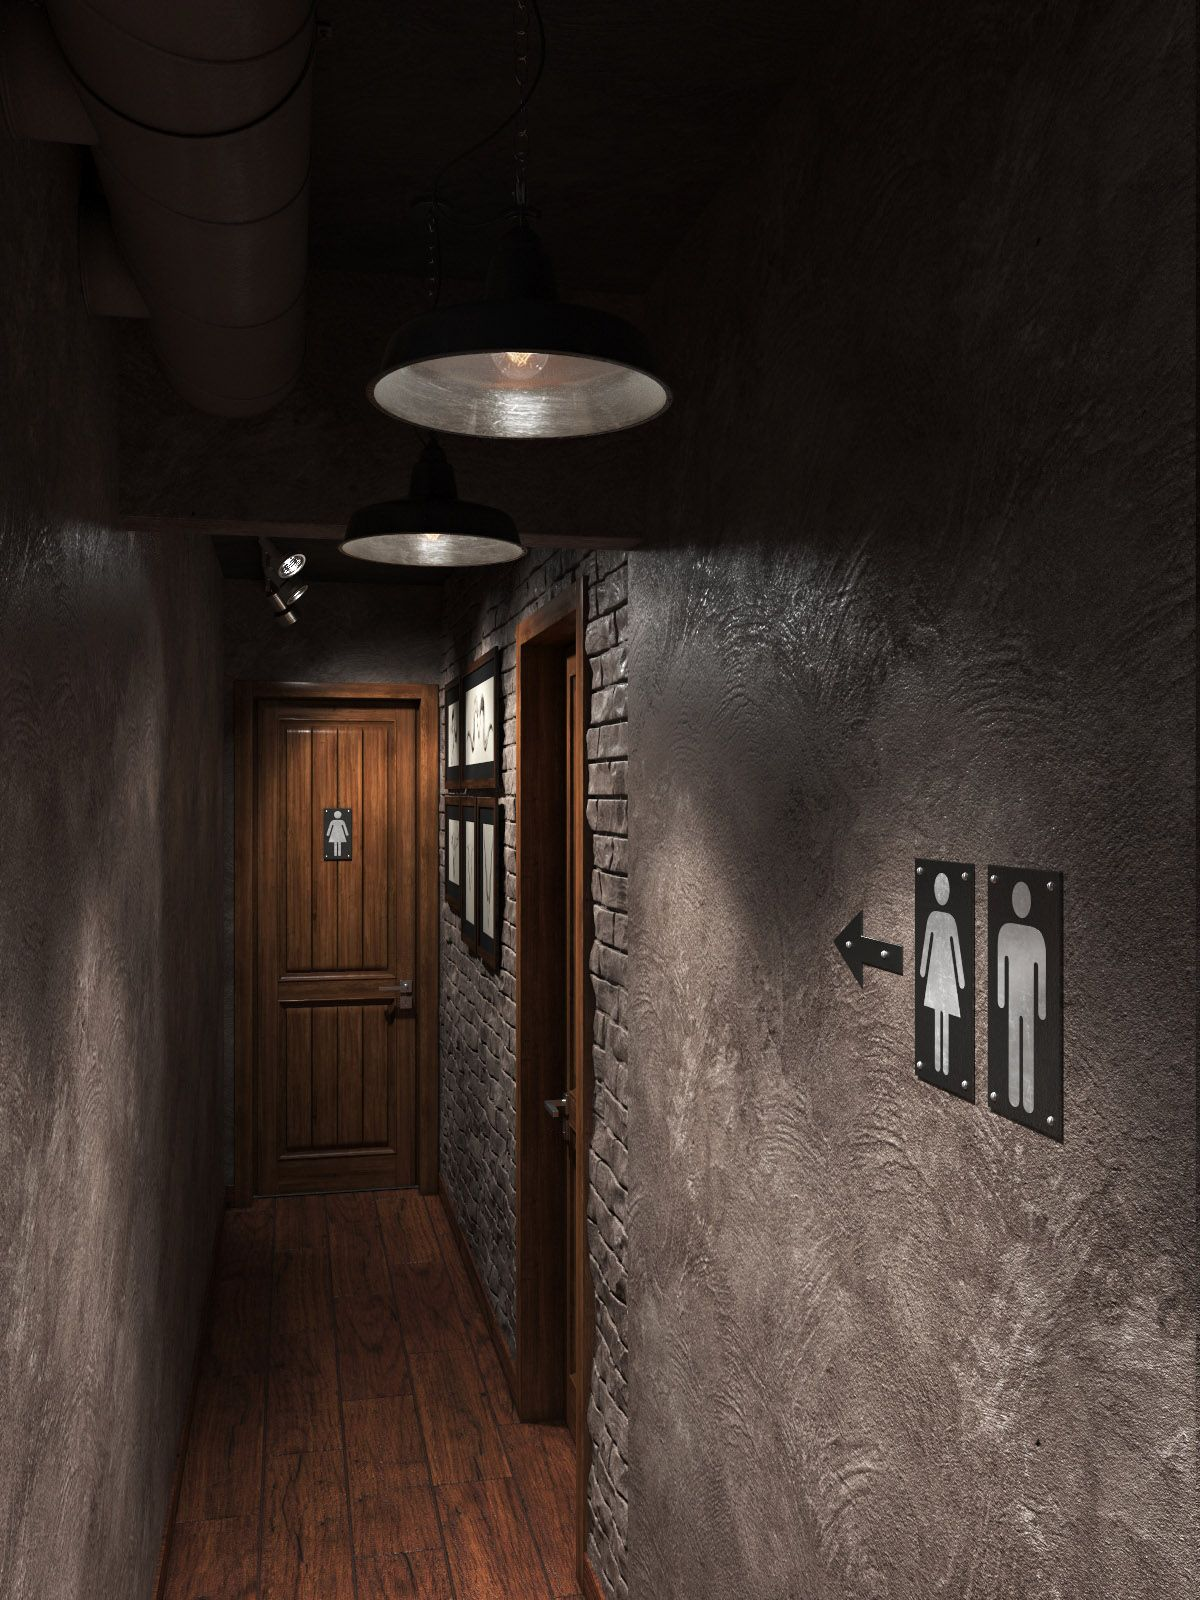 Hallway near WC in the PUB / Rendering / Software: 3ds max ...